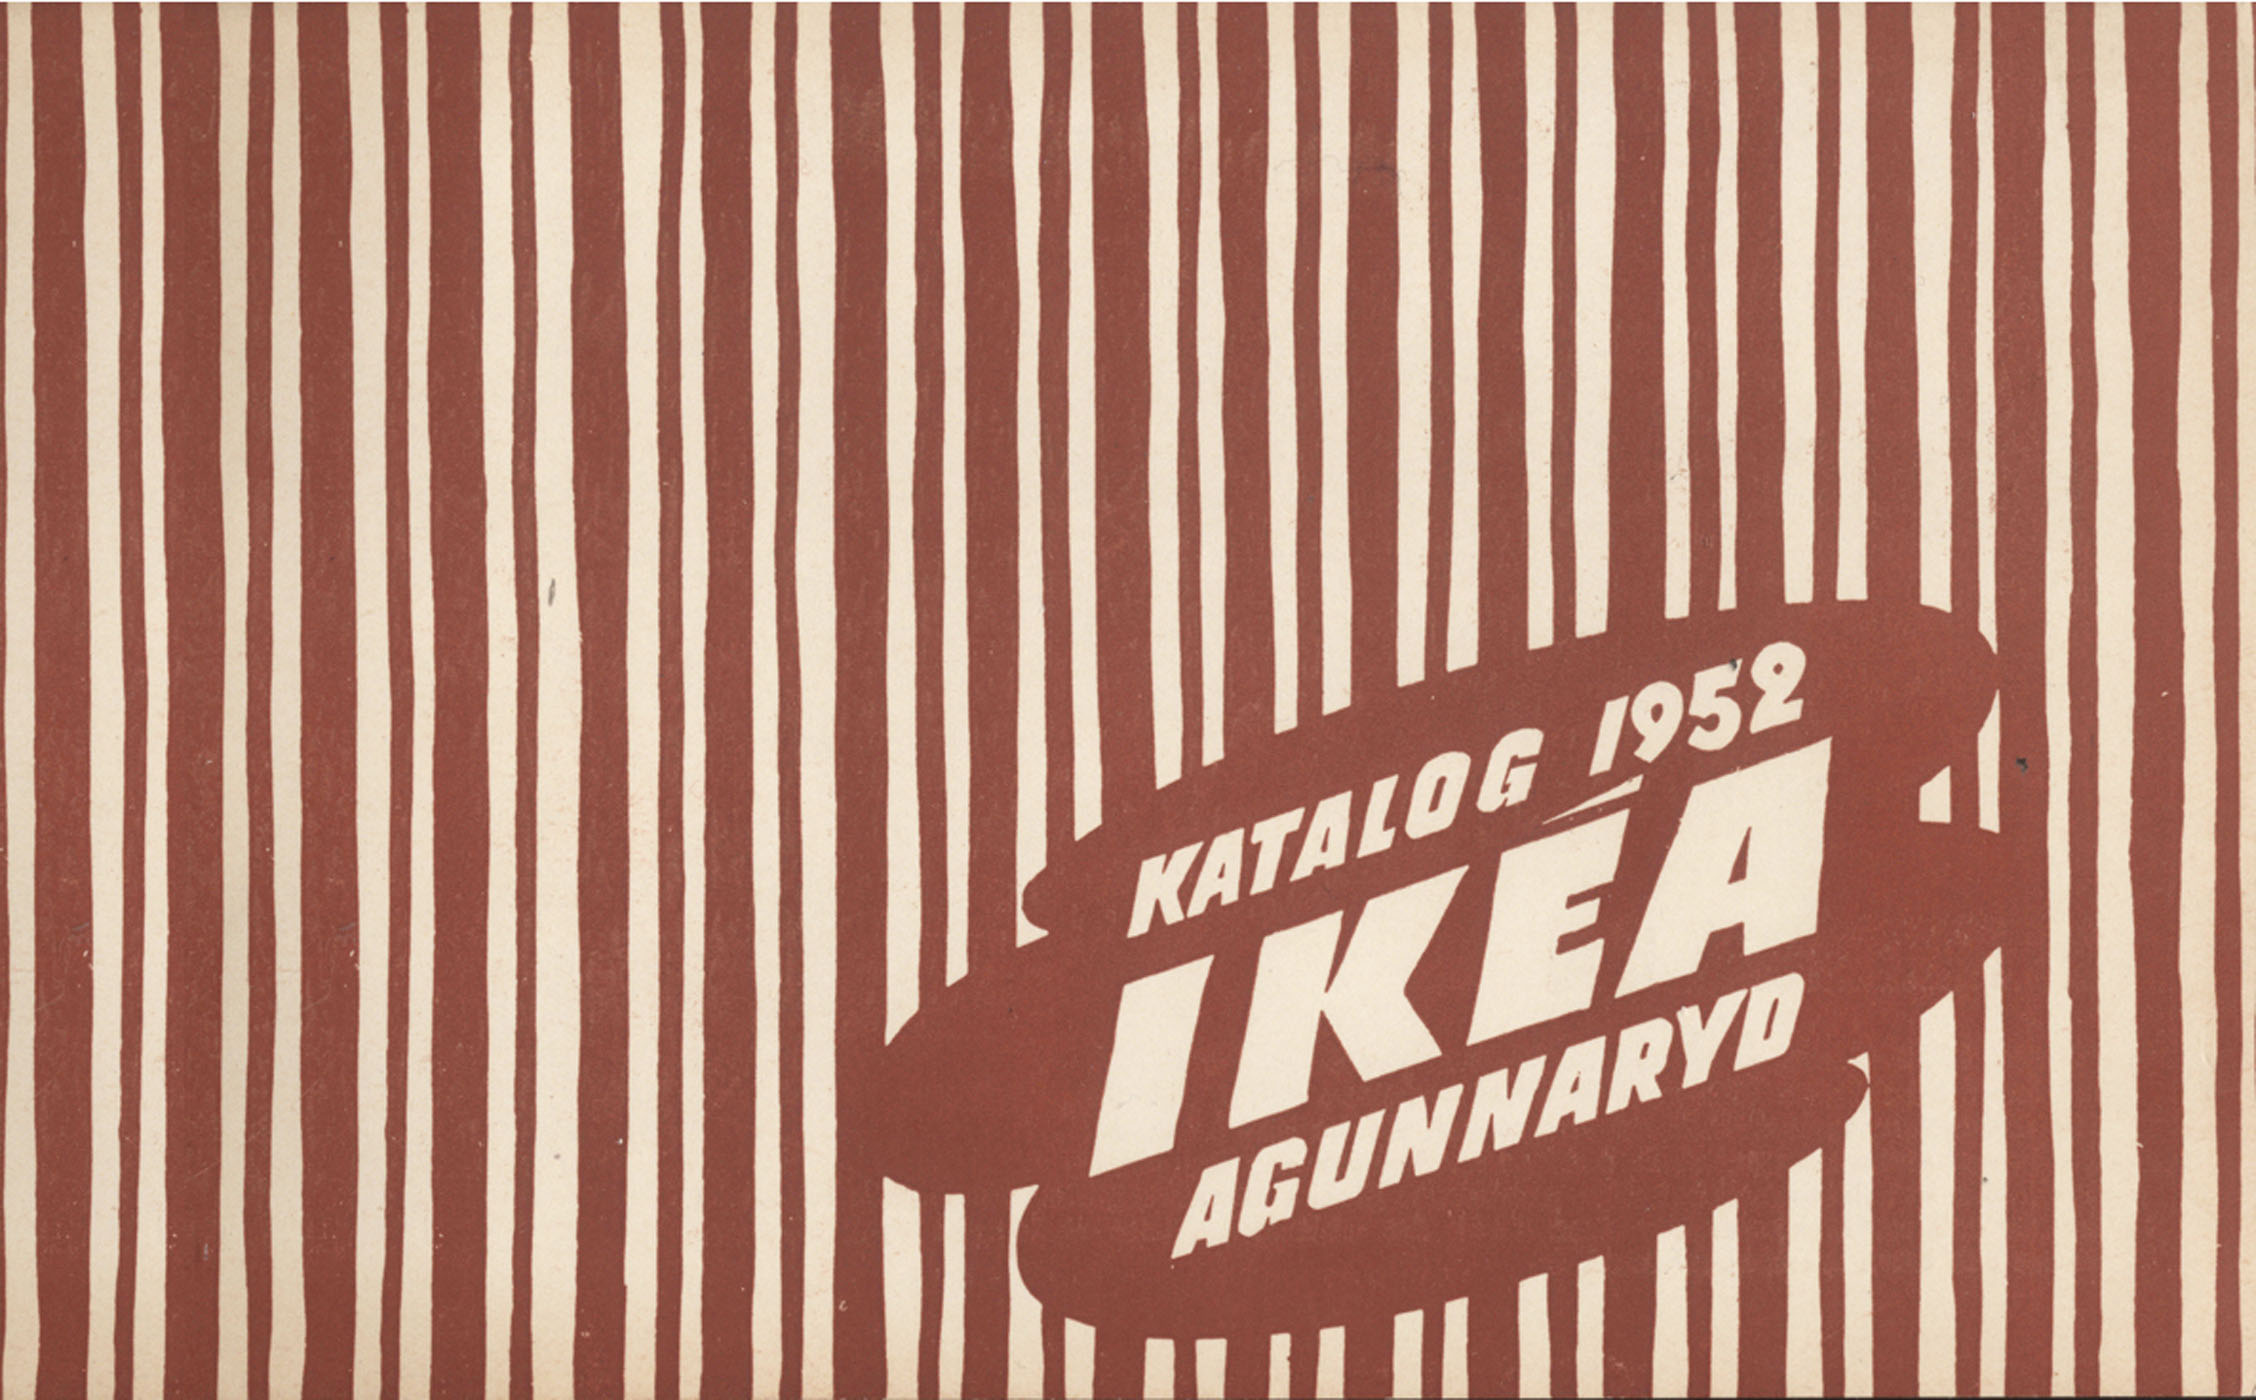 Ikea 1952 Catalog Interior Design Ideas